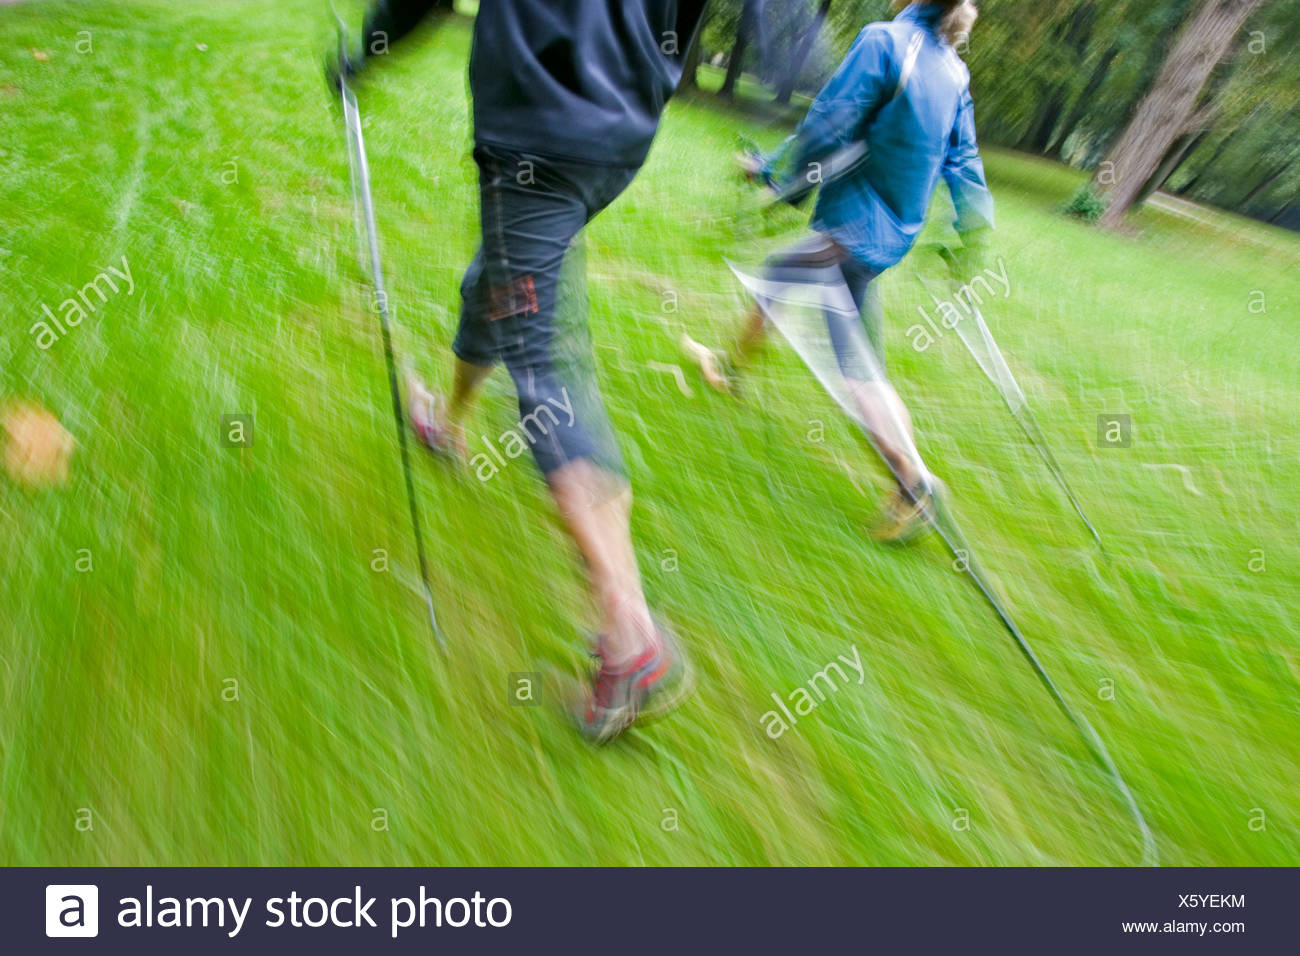 Motion studie of two nordic walker with sticks and sportive clothing walking on a green meadow in the English Garden in Munich Stock Photo